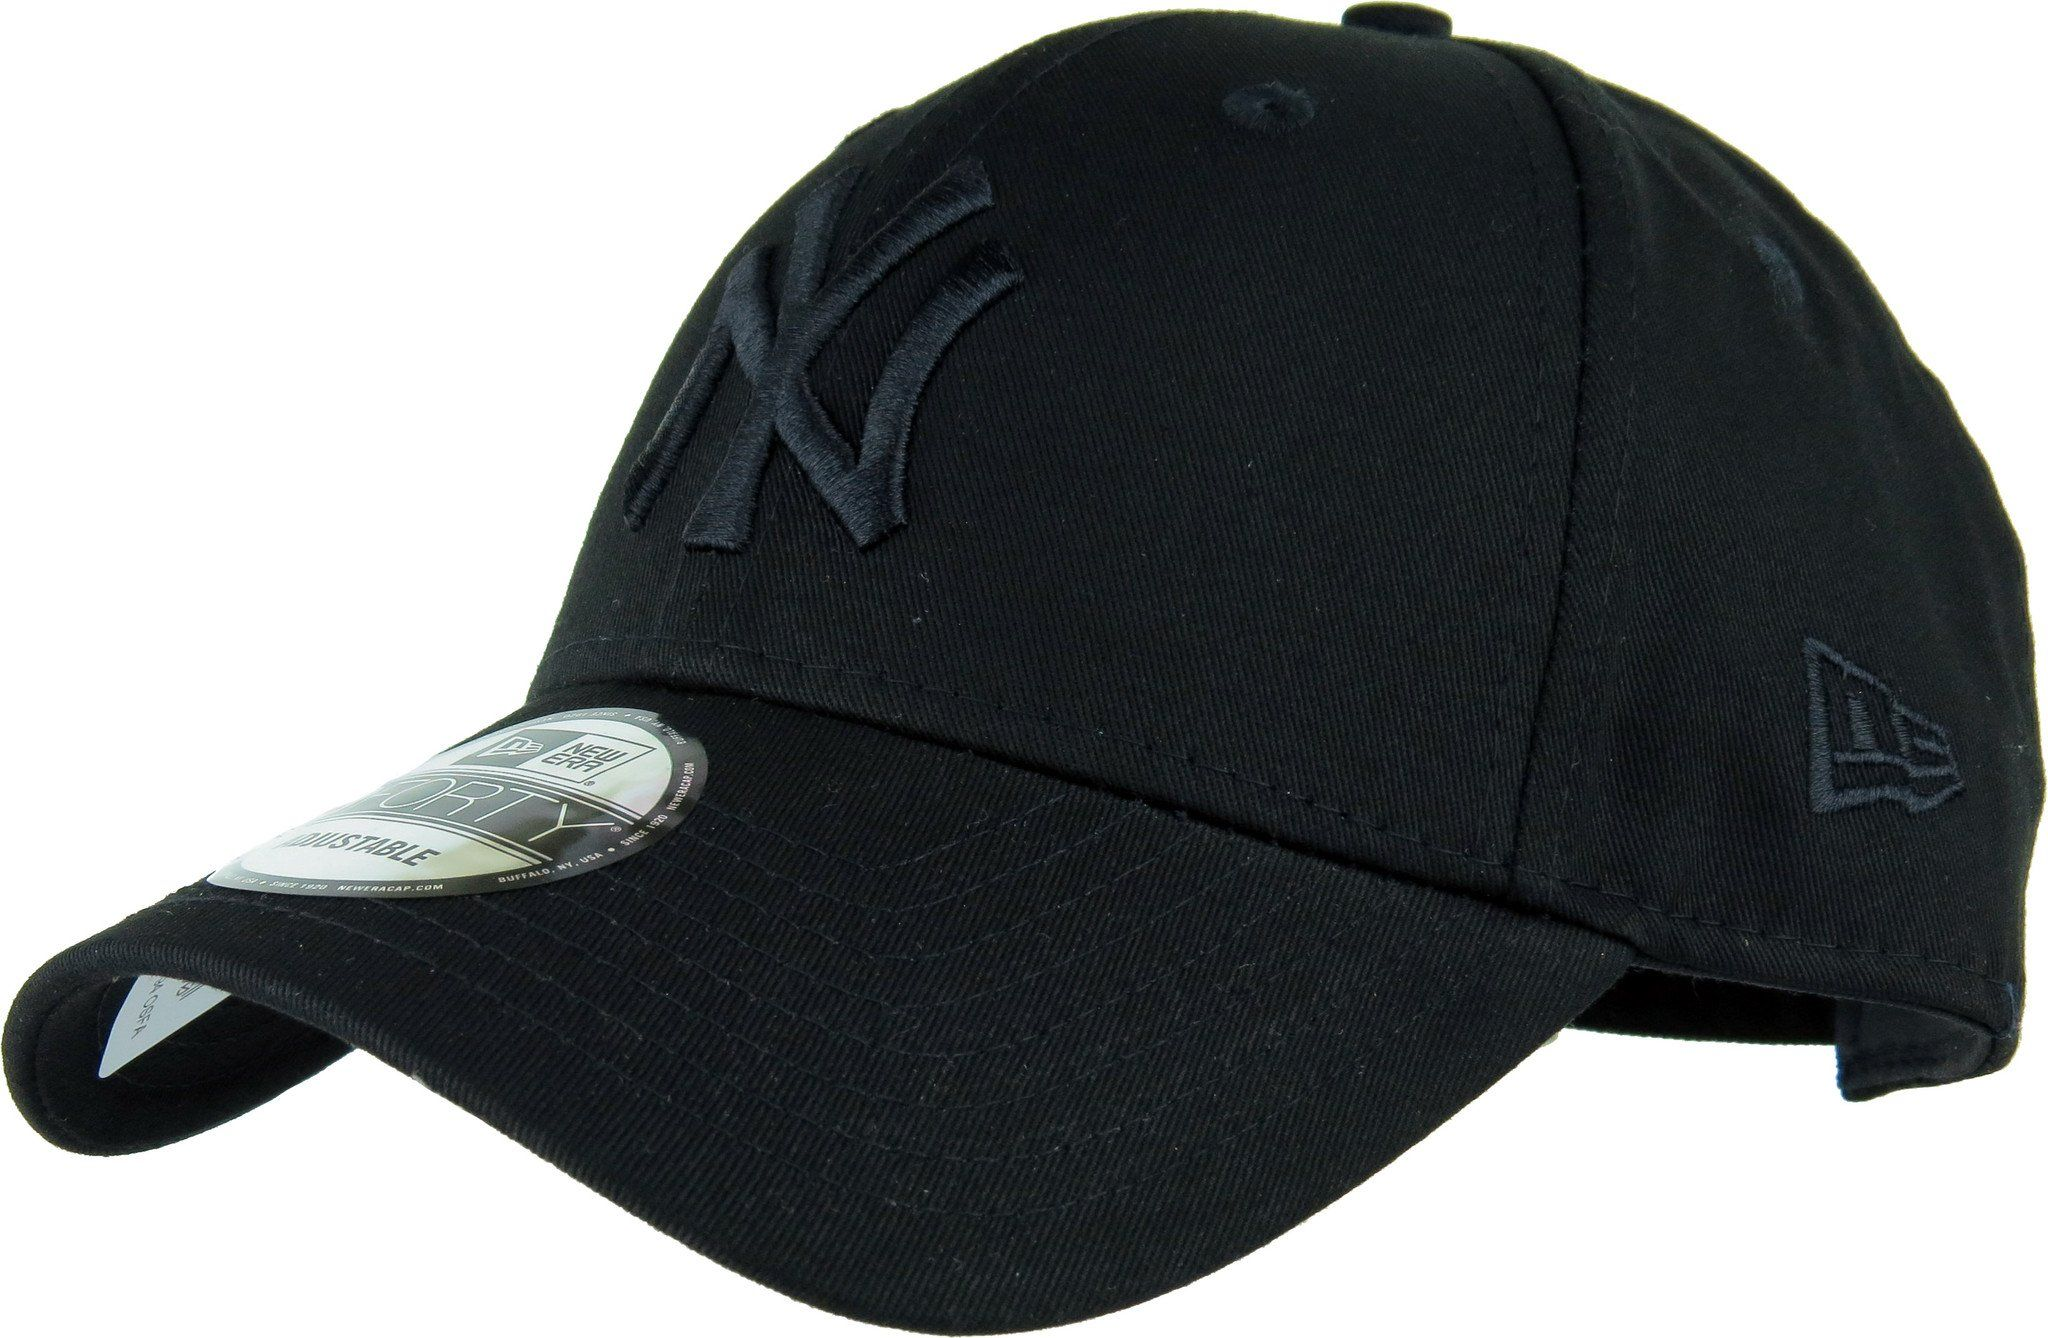 1b081500337 NY Yankees New Era 940 League Essential Baseball Cap - Black Black ...